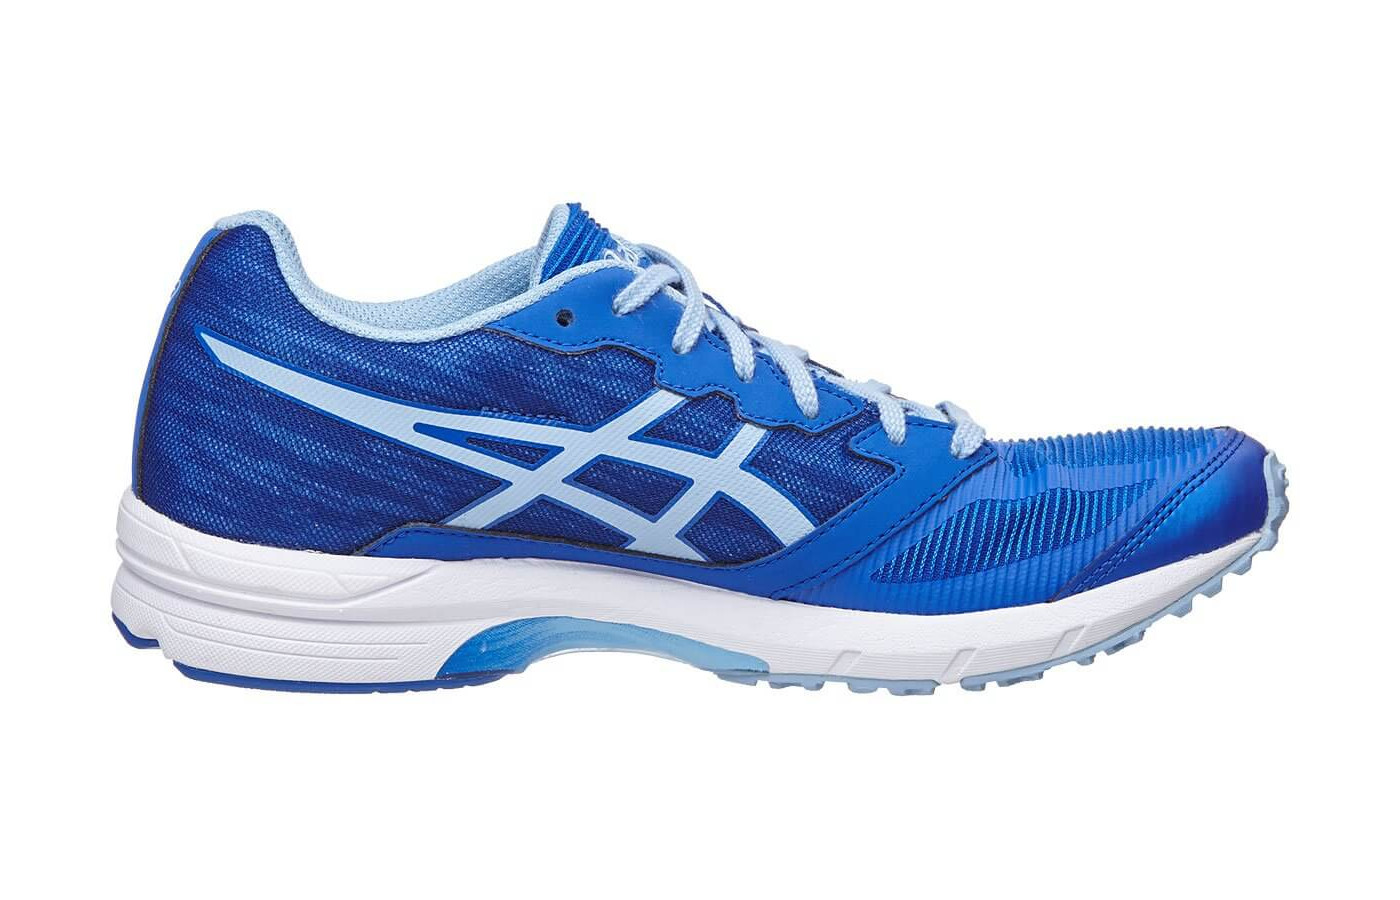 Asics Lyteracer Running Shoes